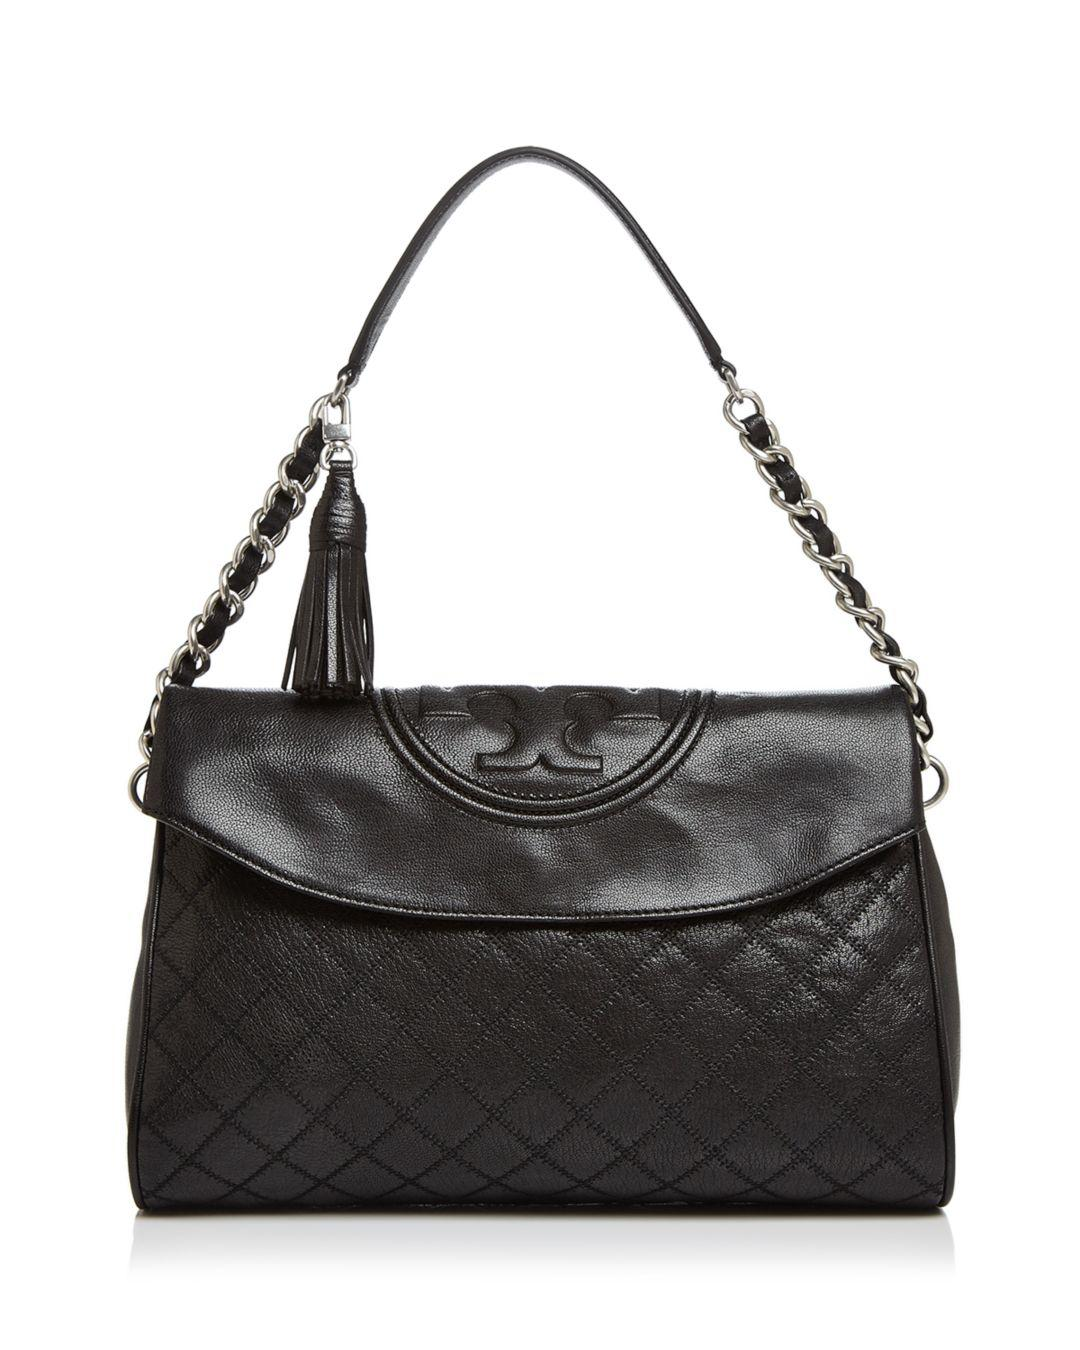 291bf2a491a1 Lyst - Tory Burch Fleming Medium Leather Hobo in Black